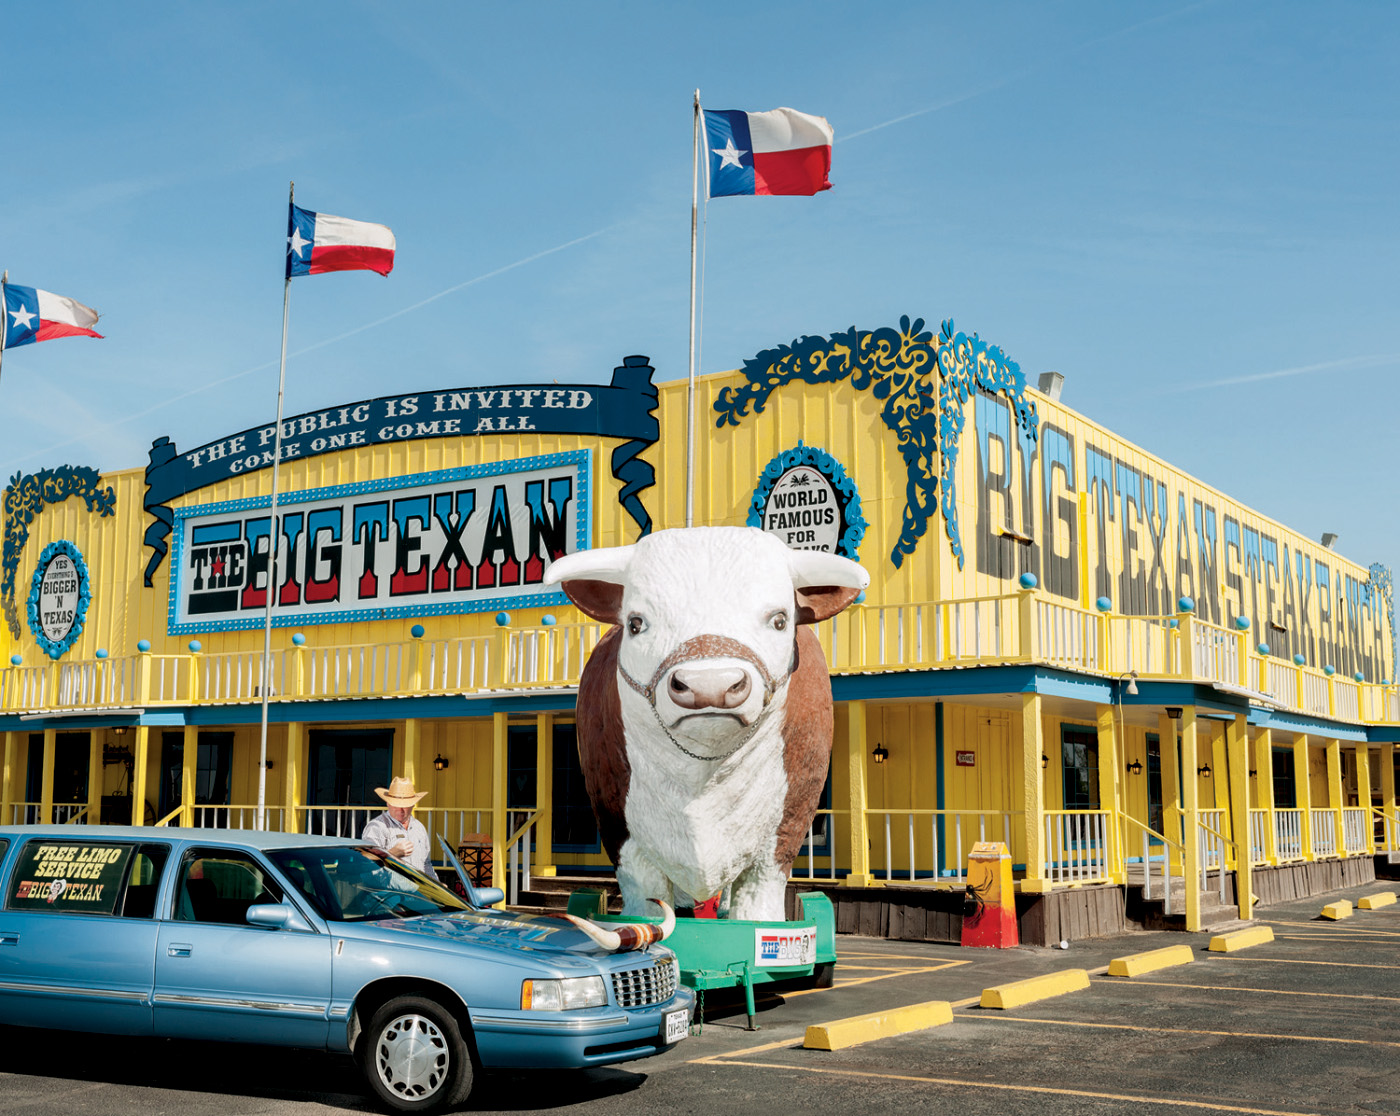 Beef is big in Texas. Last year in the state, ten times as many calves were born, 3.85 million, as human babies. At the Big Texan in Amarillo—which offers free rides in a longhorn limo—you get your 72-ounce steak for free if you finish it in under an hour, along with the shrimp cocktail, the baked potato, the salad, and the roll.